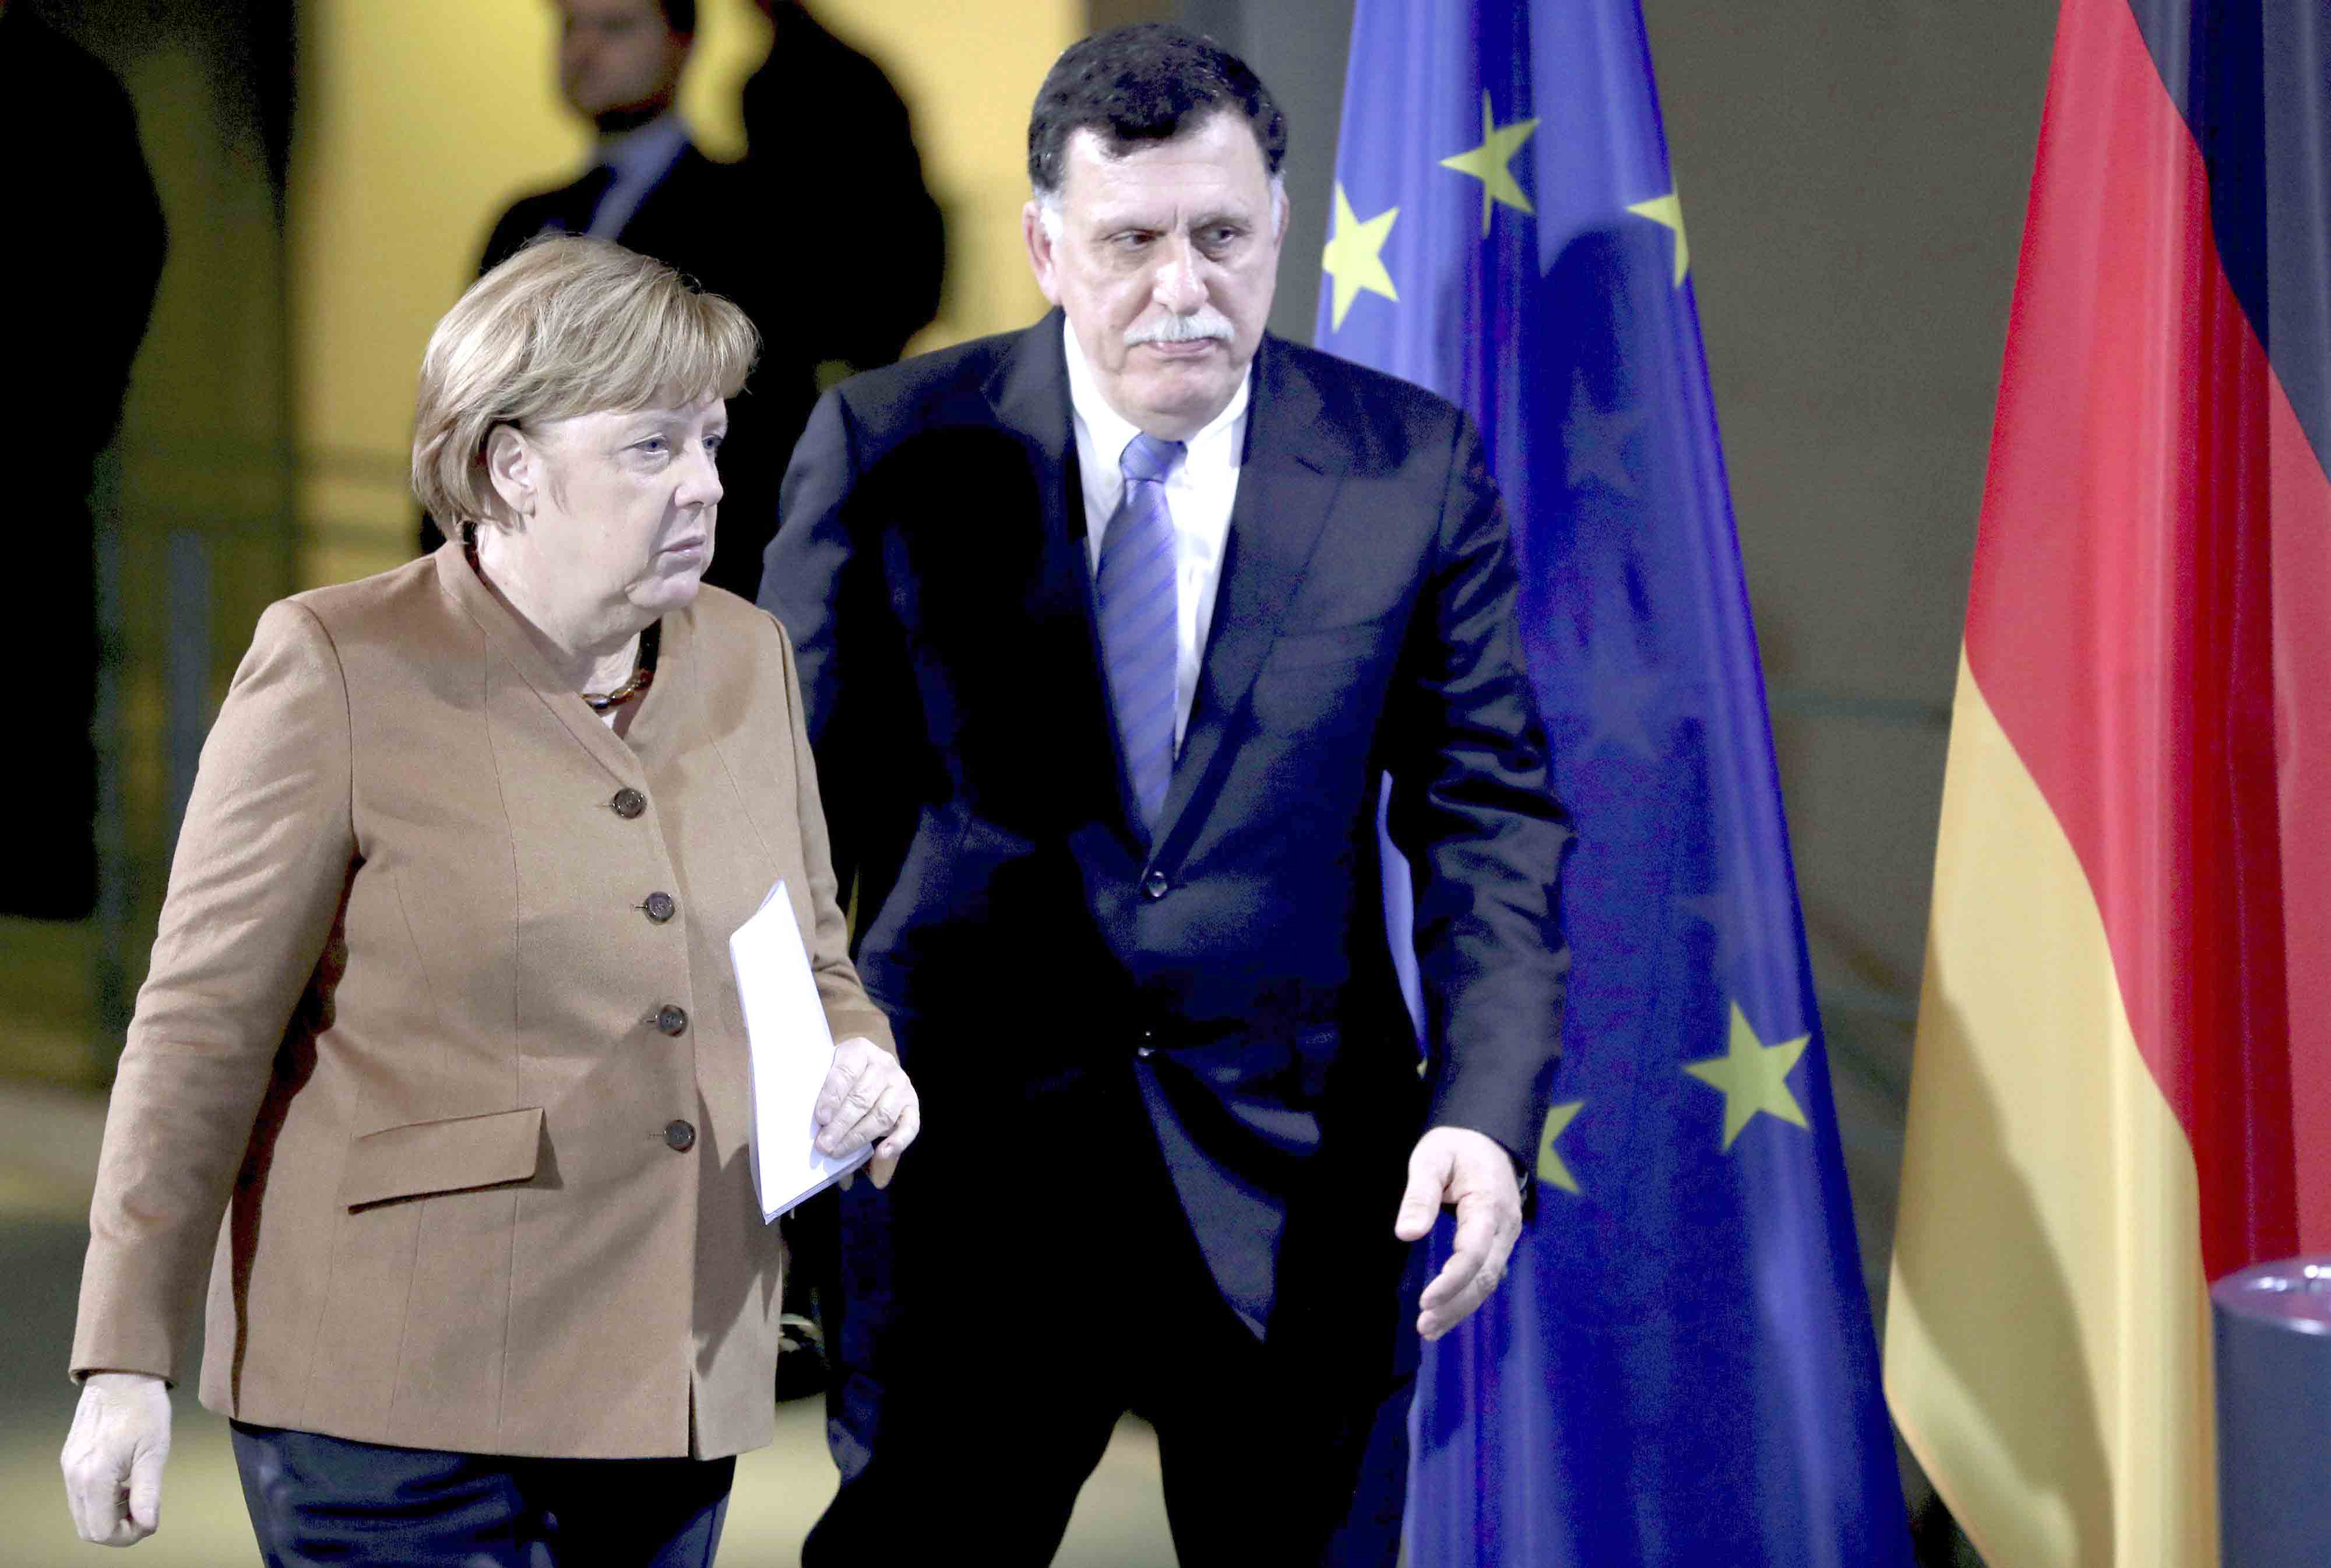 A file picture shows German Chancellor Angela Merkel (L) and Libyan Prime Minister Fayez al-Sarraj arriving for a joint news  conferene in Berlin. (AP)